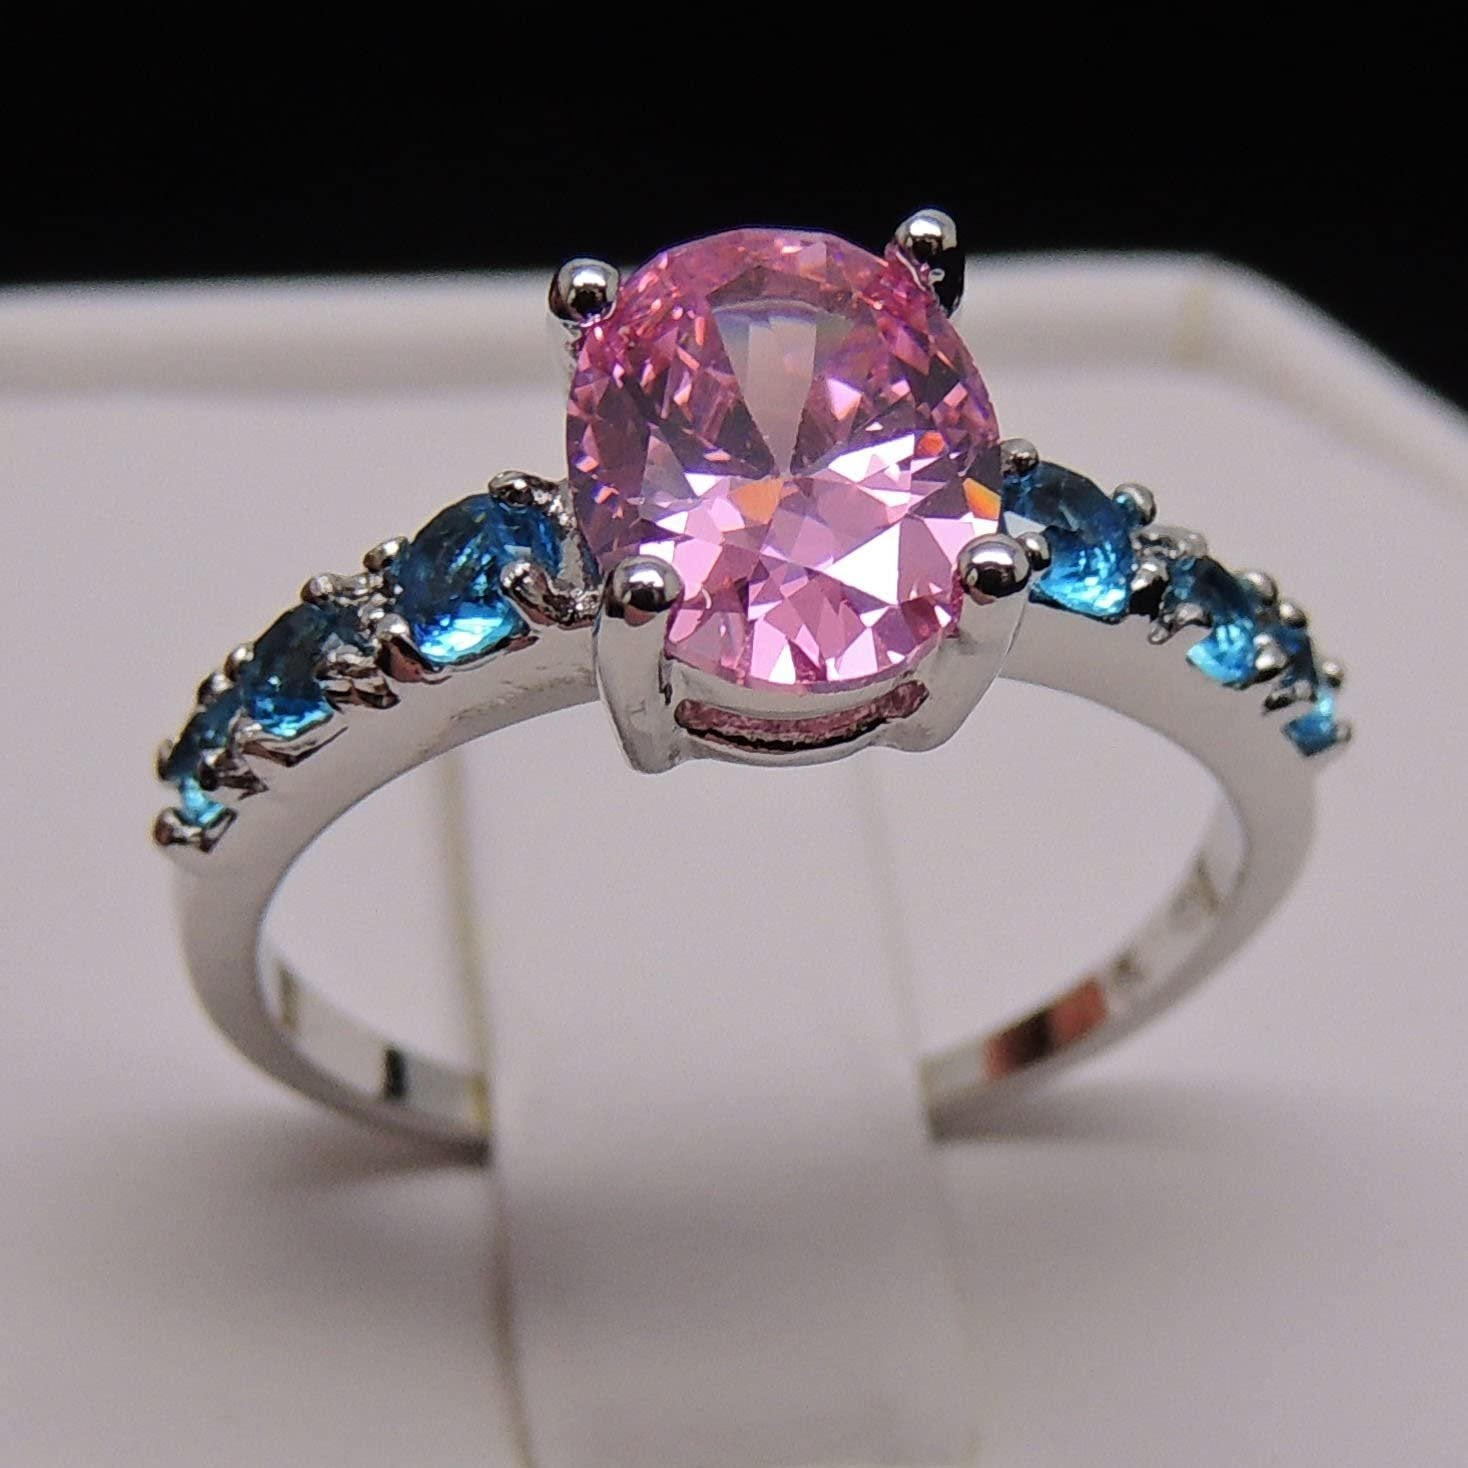 Deanna Classy Pink and Blue Cubic Zirconia Engagement Ring - Ginger Lyne Collection